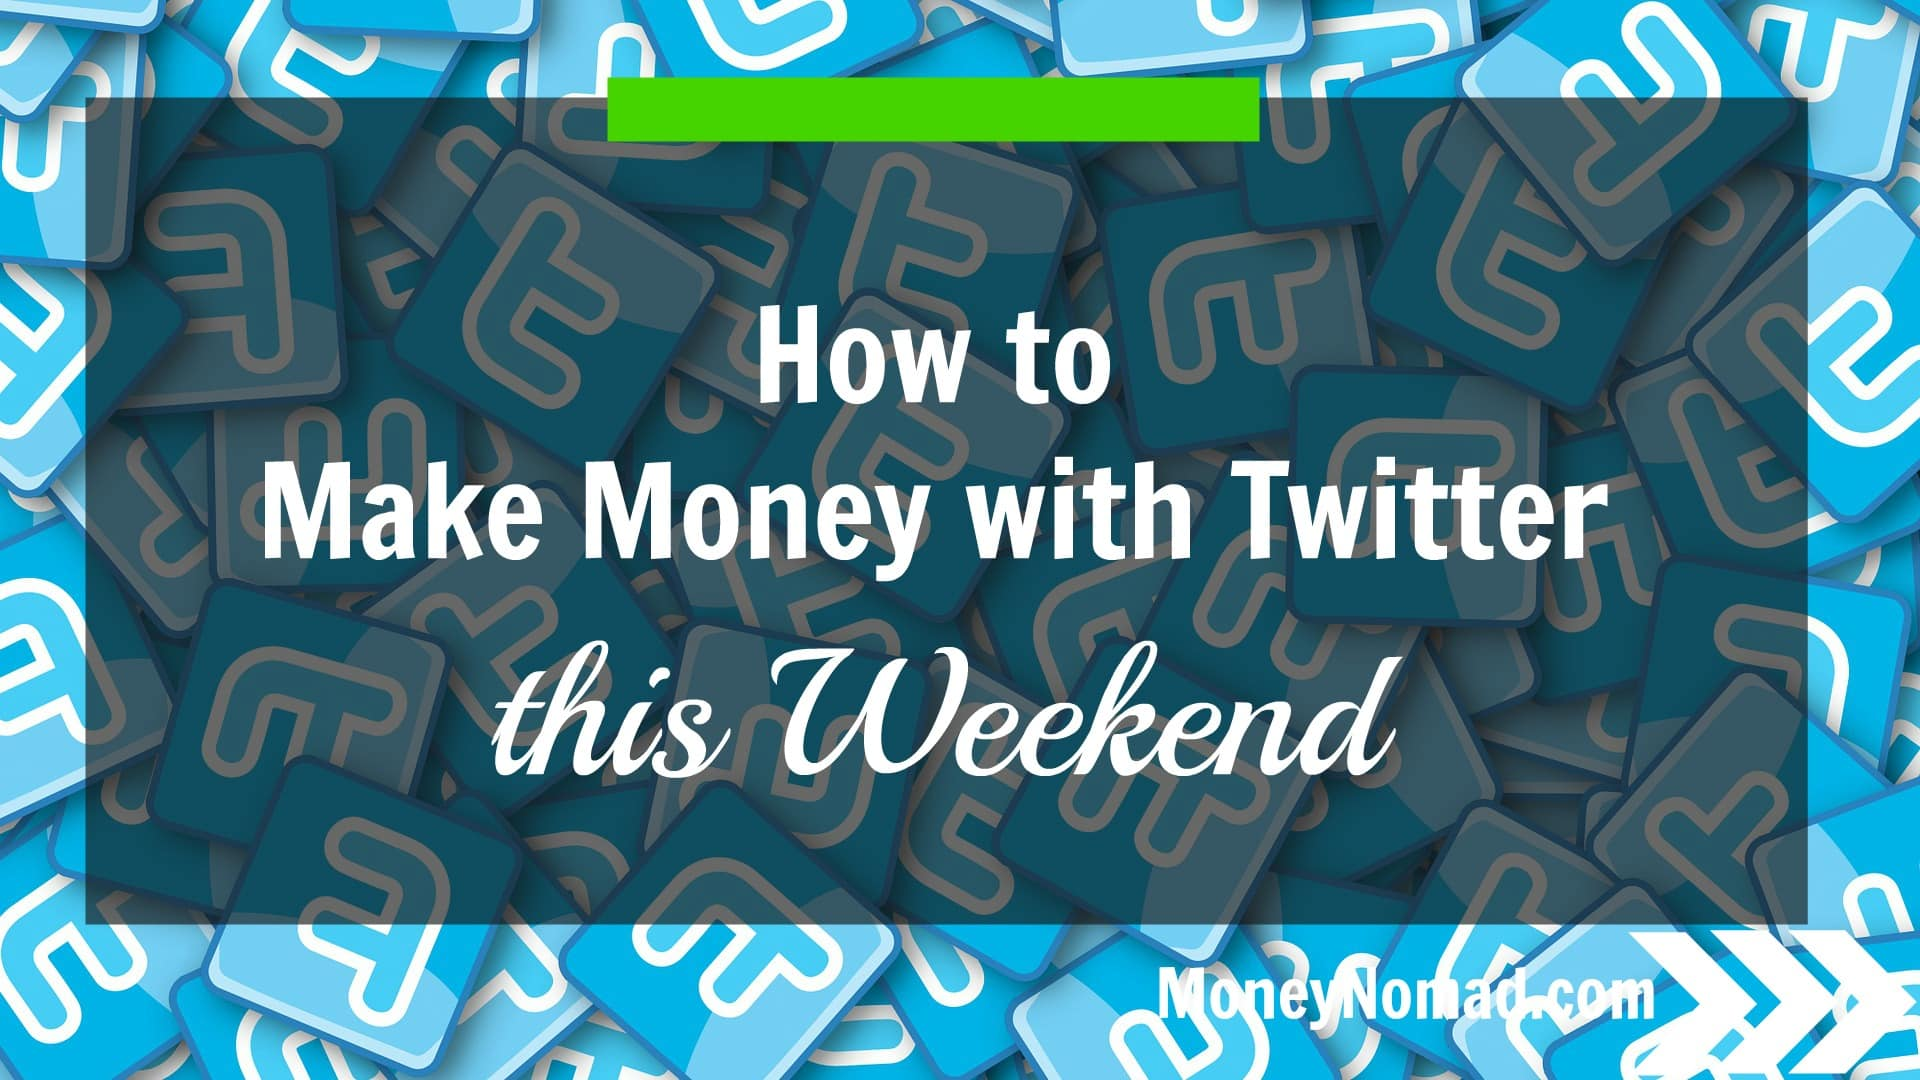 How to Make Money with Twitter this Weekend